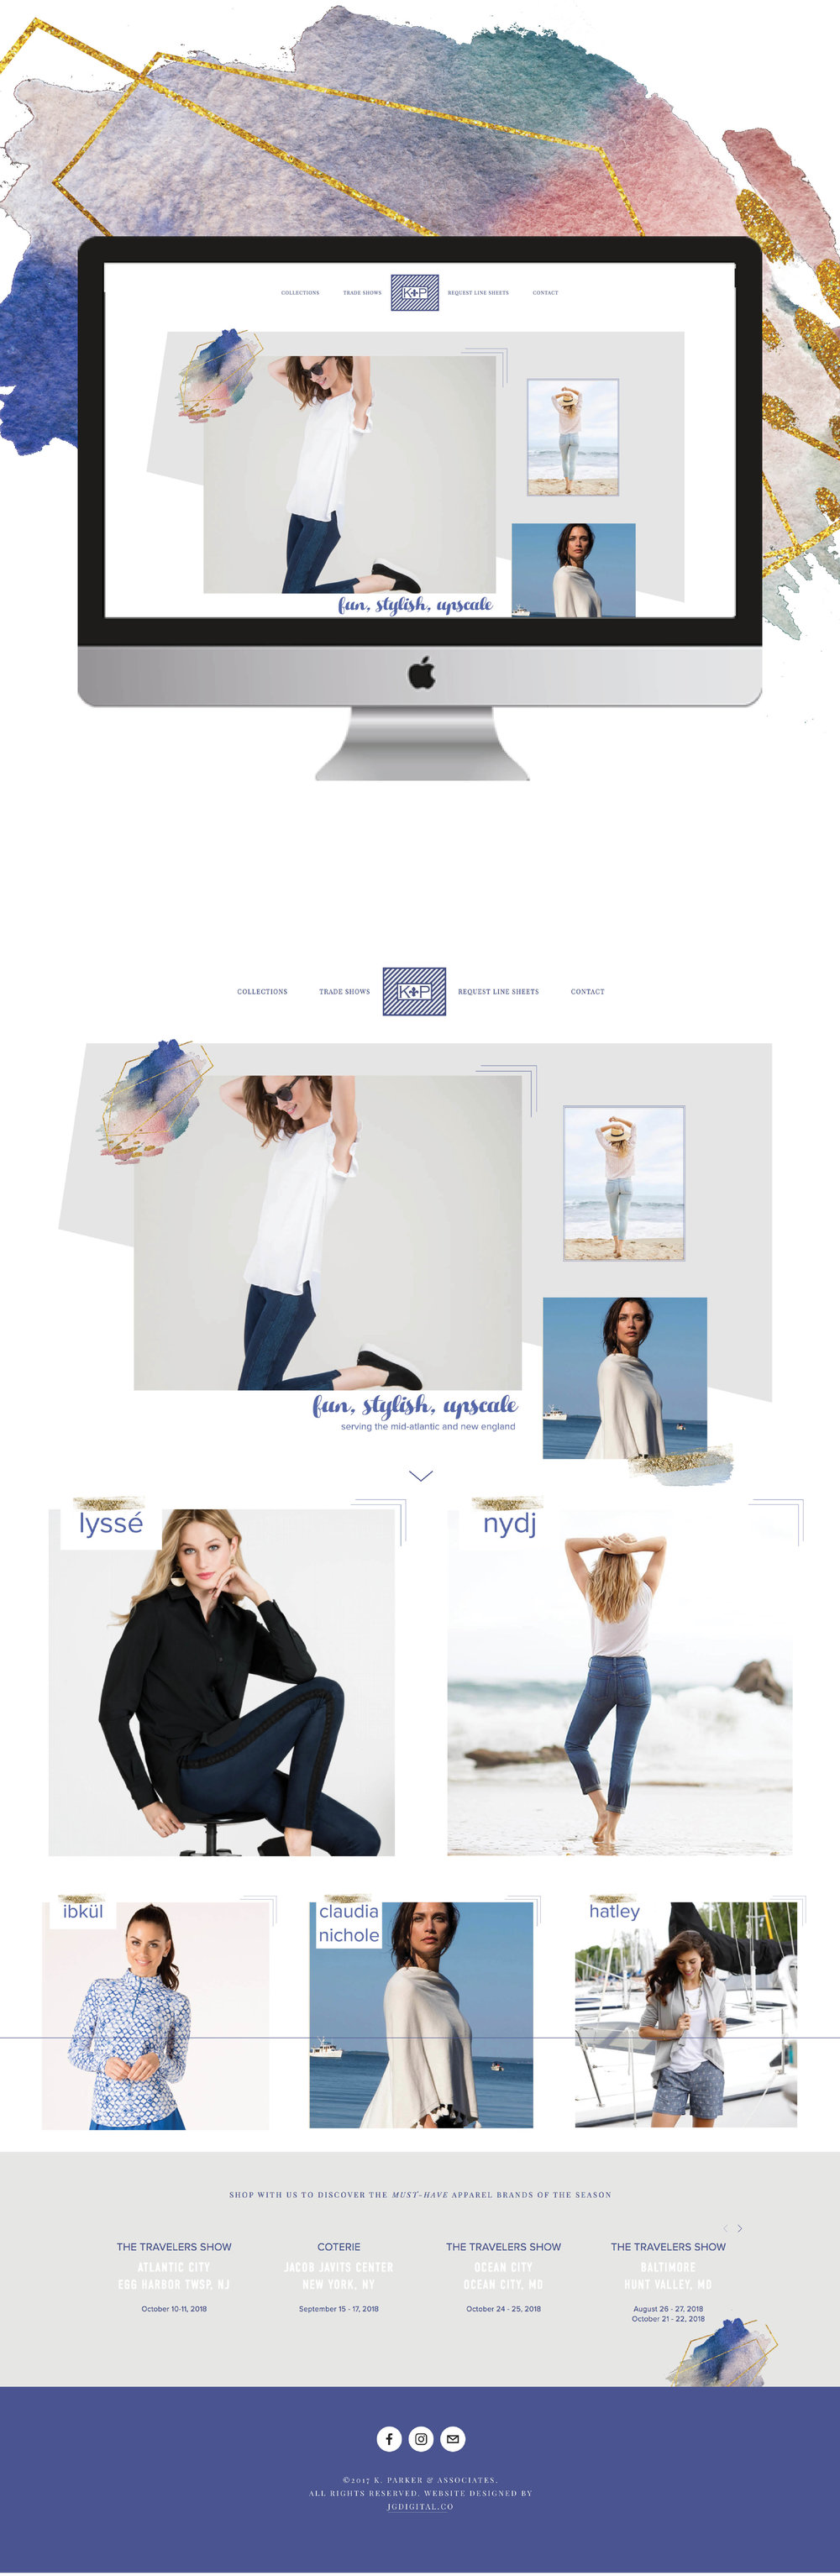 Fashion-Inspired Squarespace Website Design for K. Parker Associates by jgdigital.co